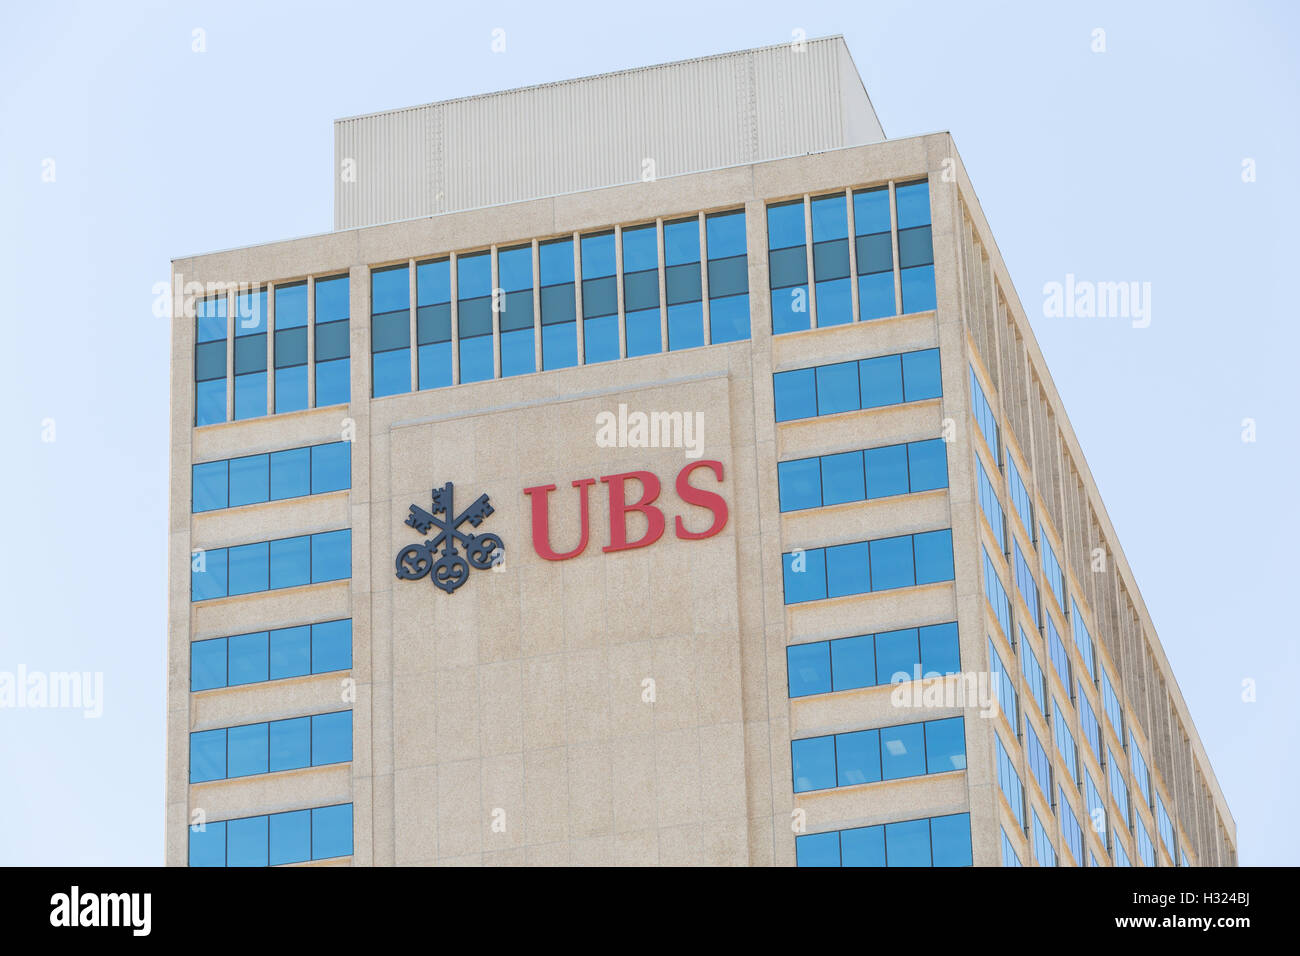 UBS Tower in Nashville, Tennessee. - Stock Image